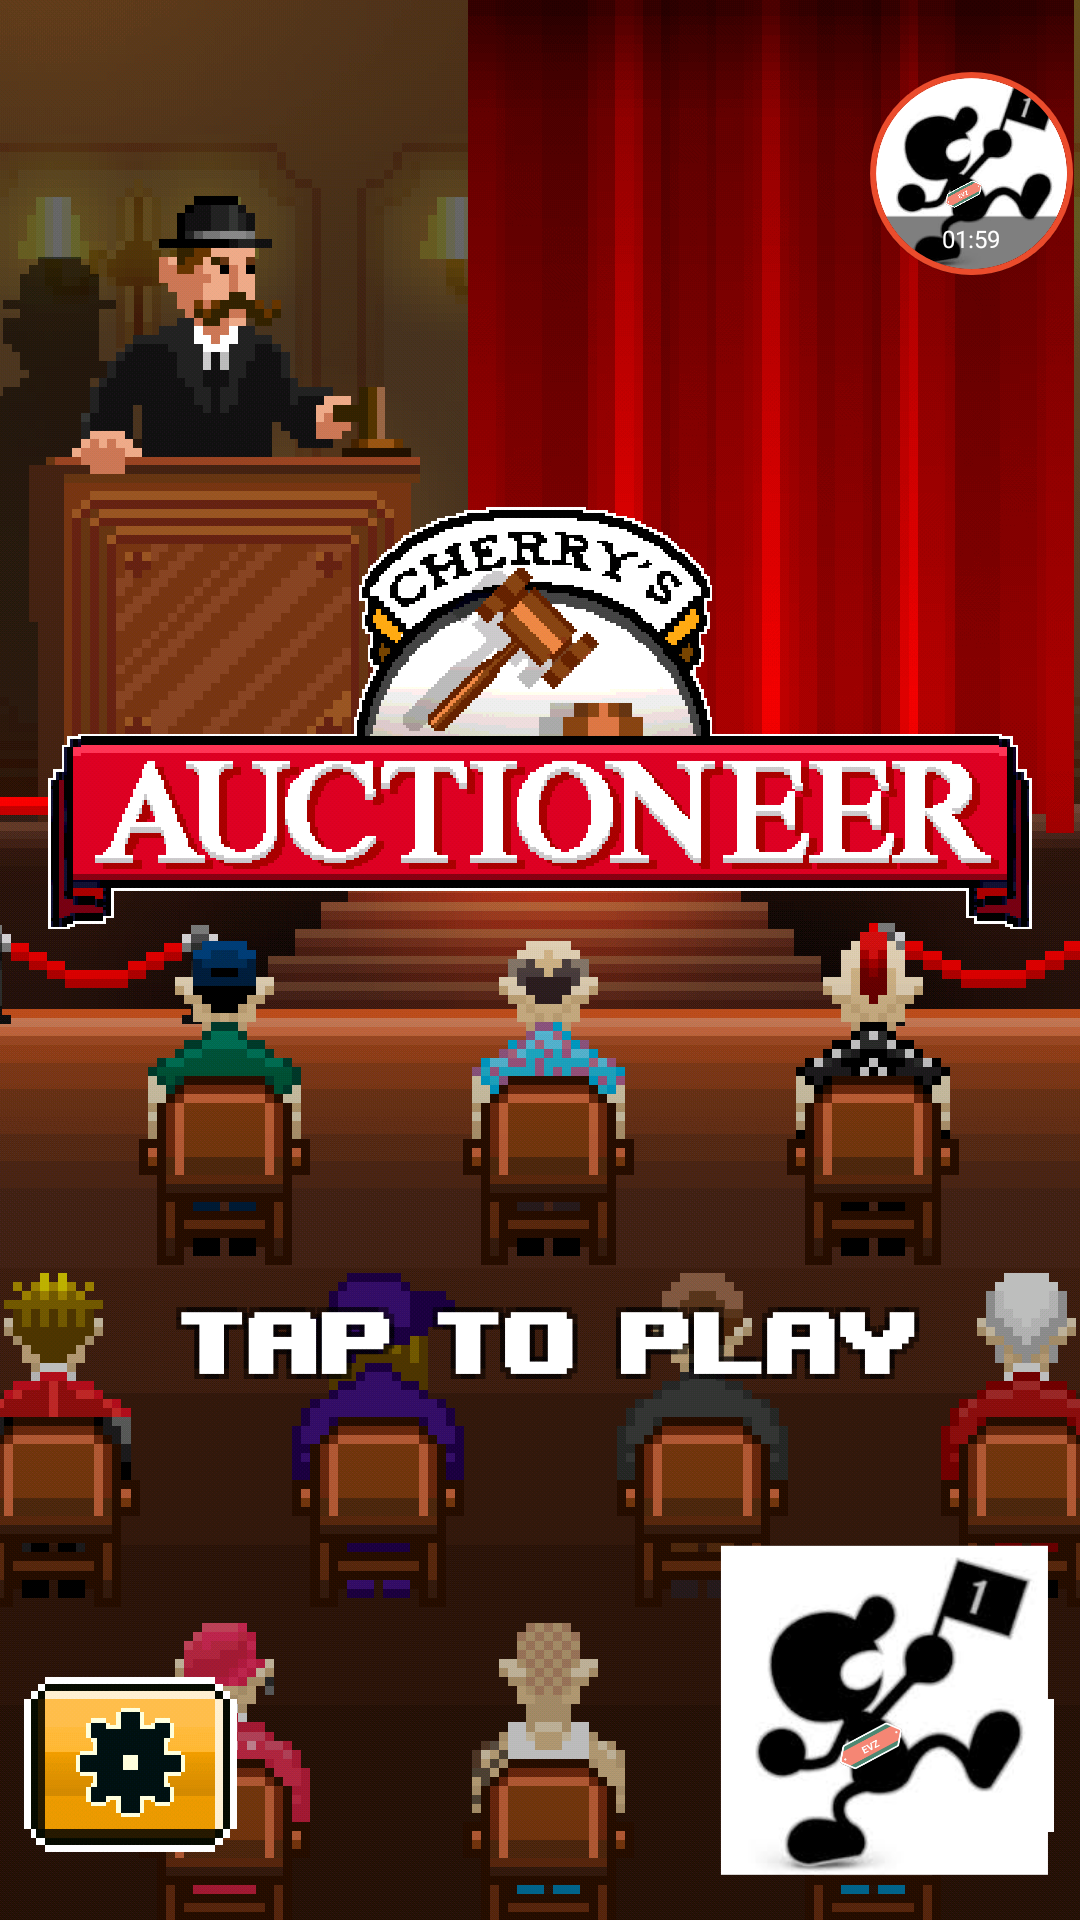 ministorm04: Auctioneer (Android) 67 points on 2019-07-10 08:36:50